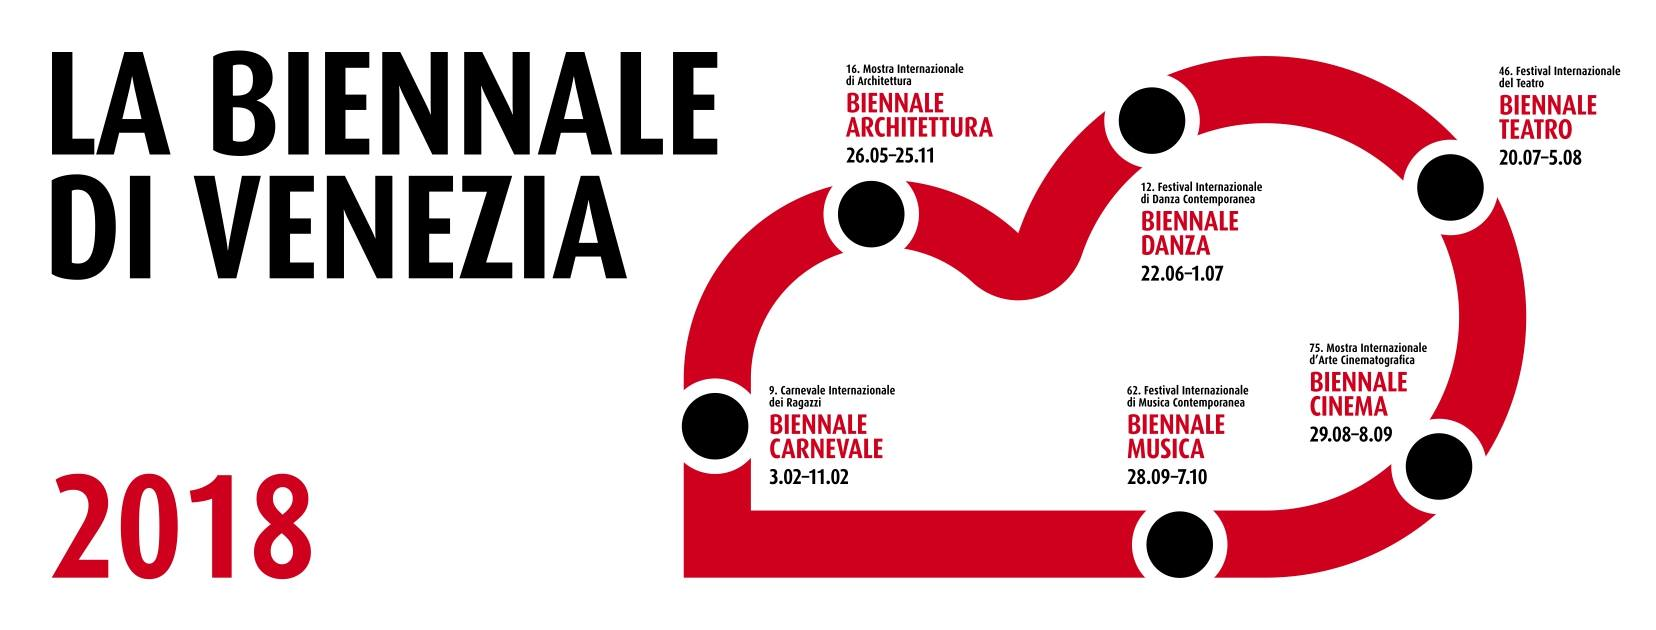 Garnica works with Alison Brooks Architects  in La Biennale di Venezia